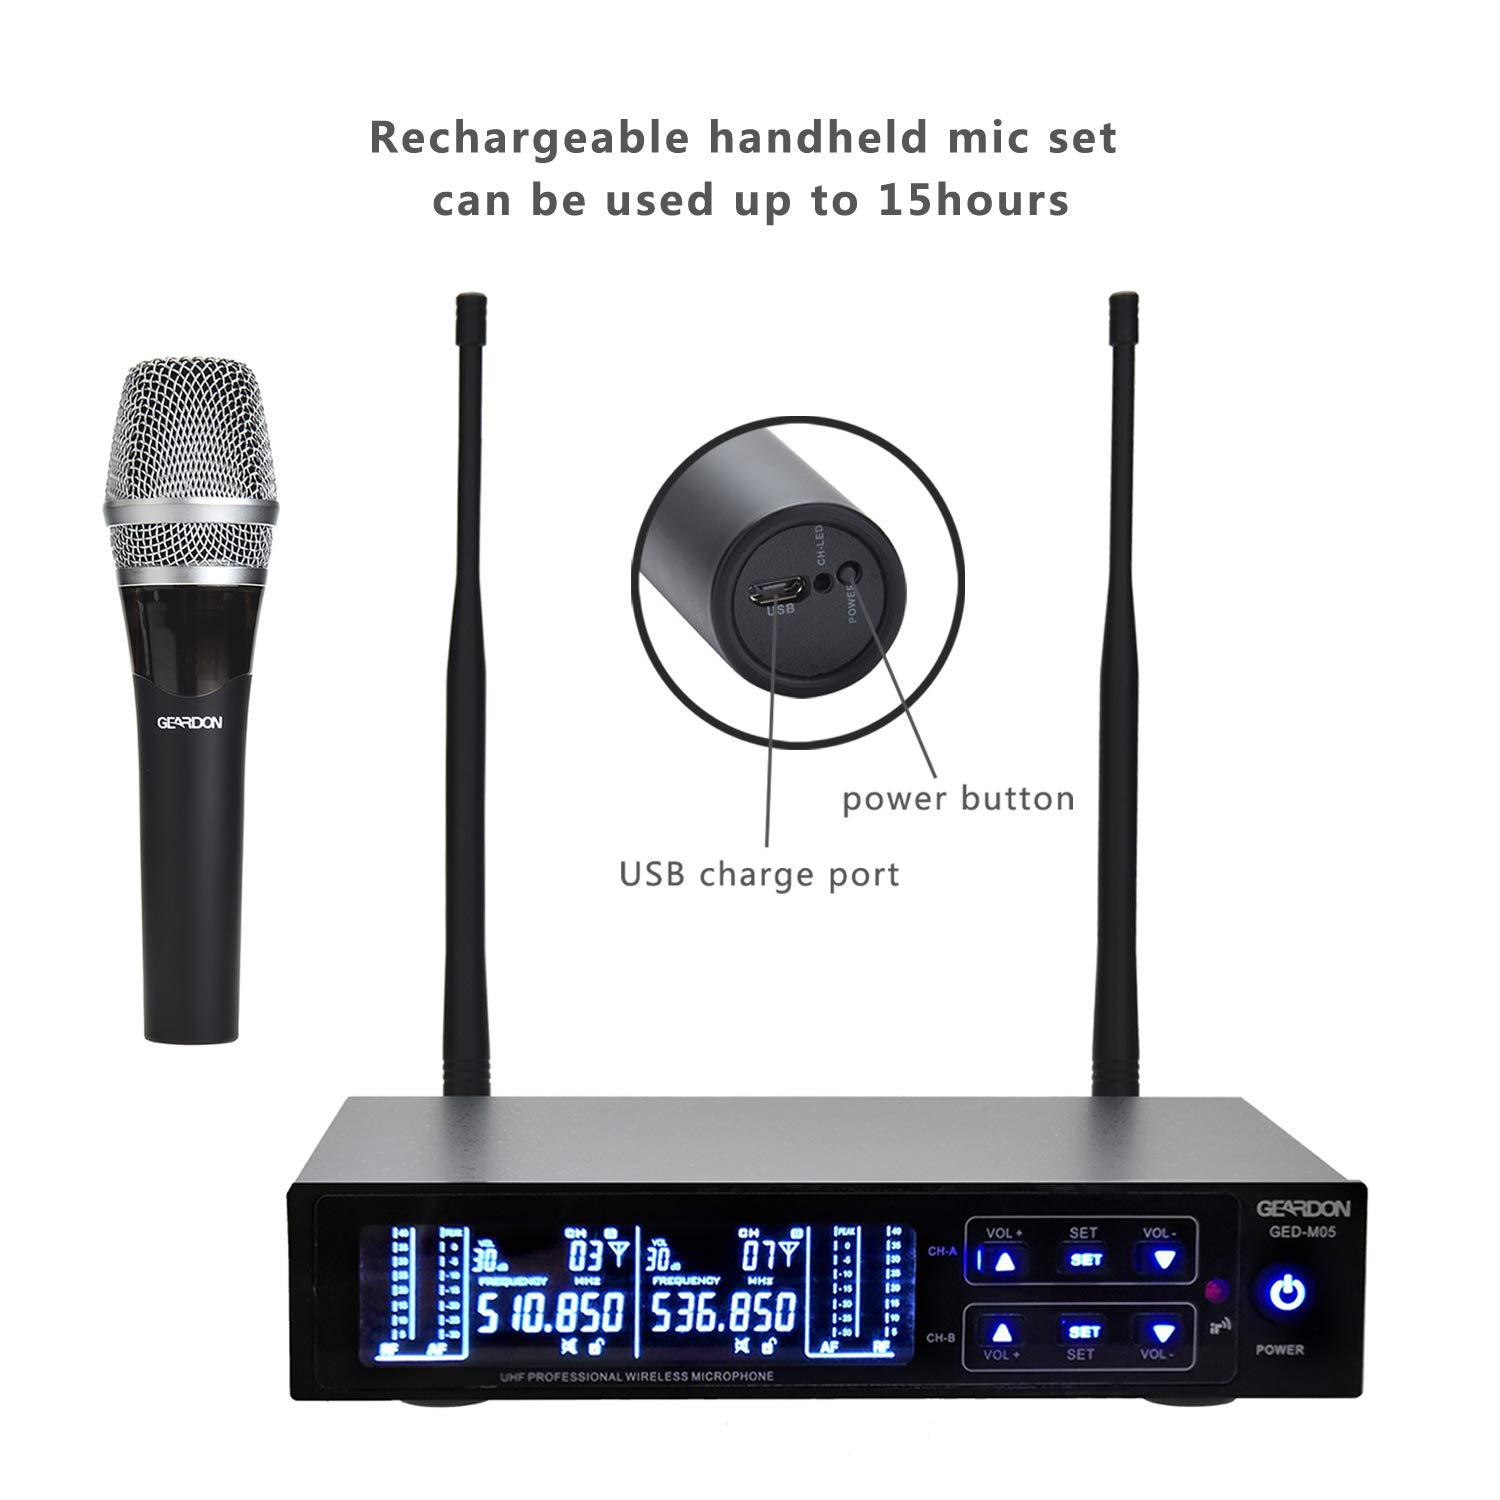 Geardon Pro Rechargeable Dual Wireless Microphone System, 200 Channel UHF Wireless Mic Set with 250ft Long Range Professional Performance, 12hours Battery Continuous Use for Church/Karaoke/DJ by Geardon Pro (Image #3)